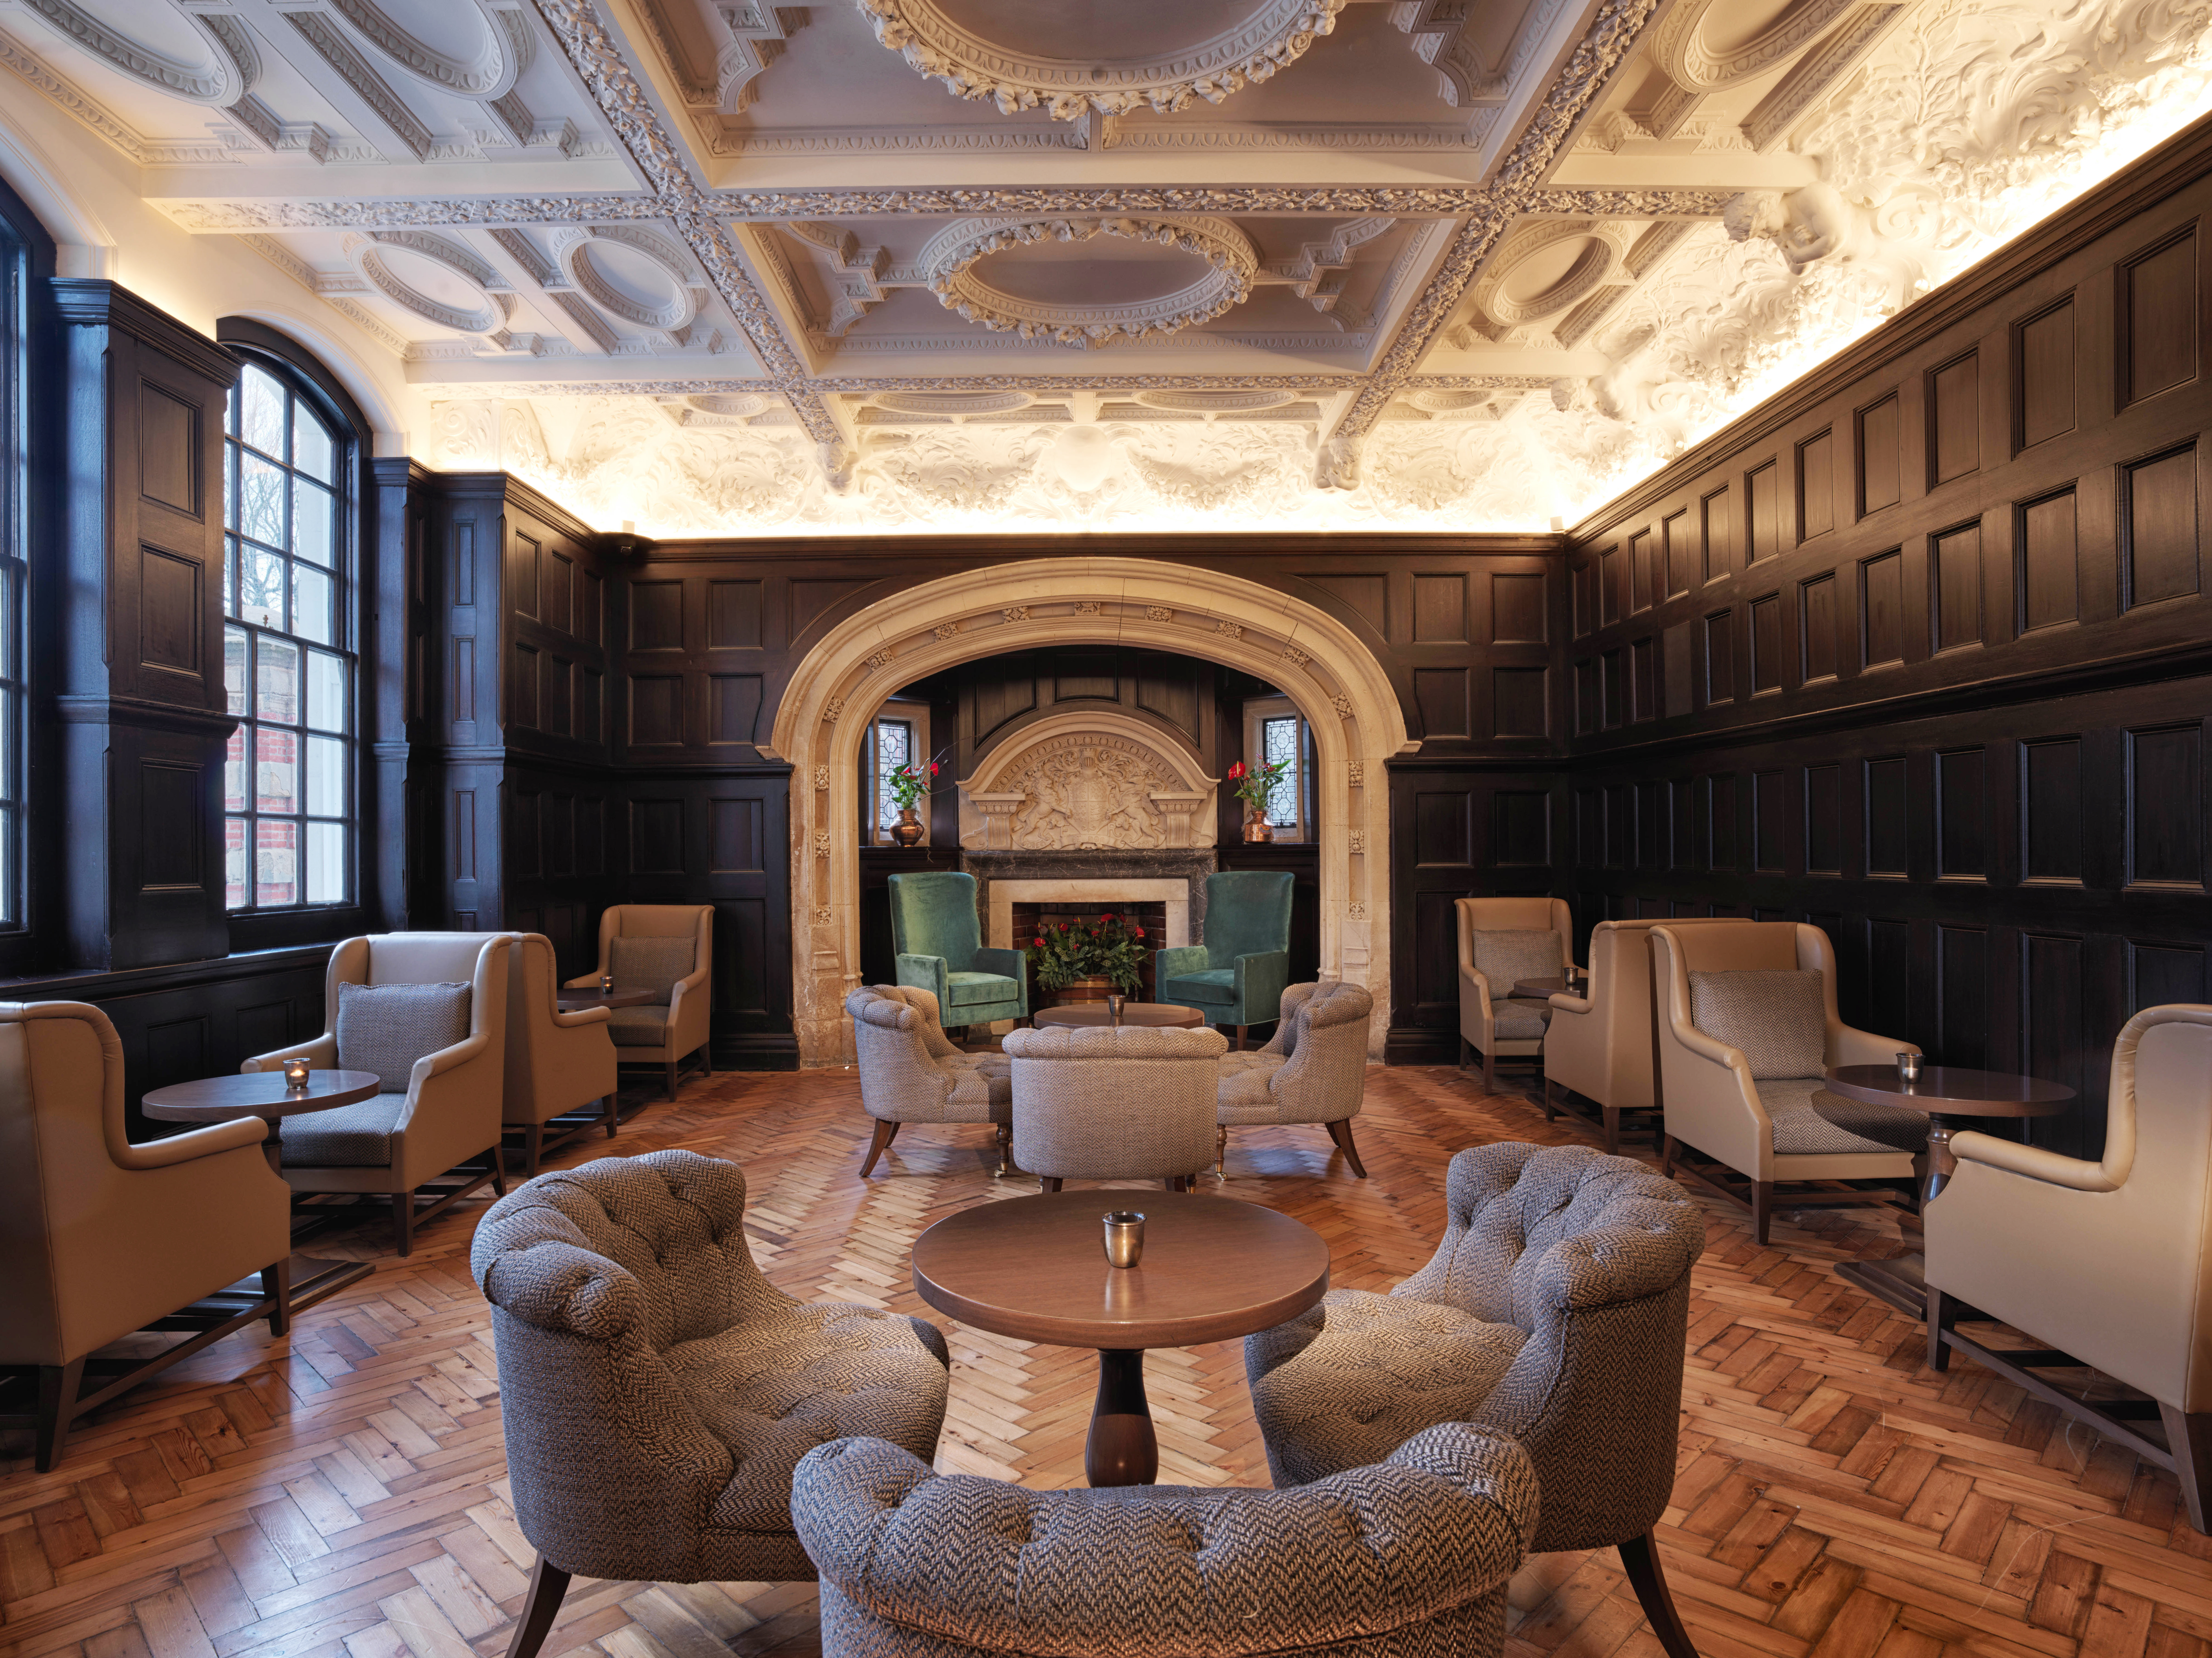 Small Luxury Hotels Of The World Welcomes Lalit London